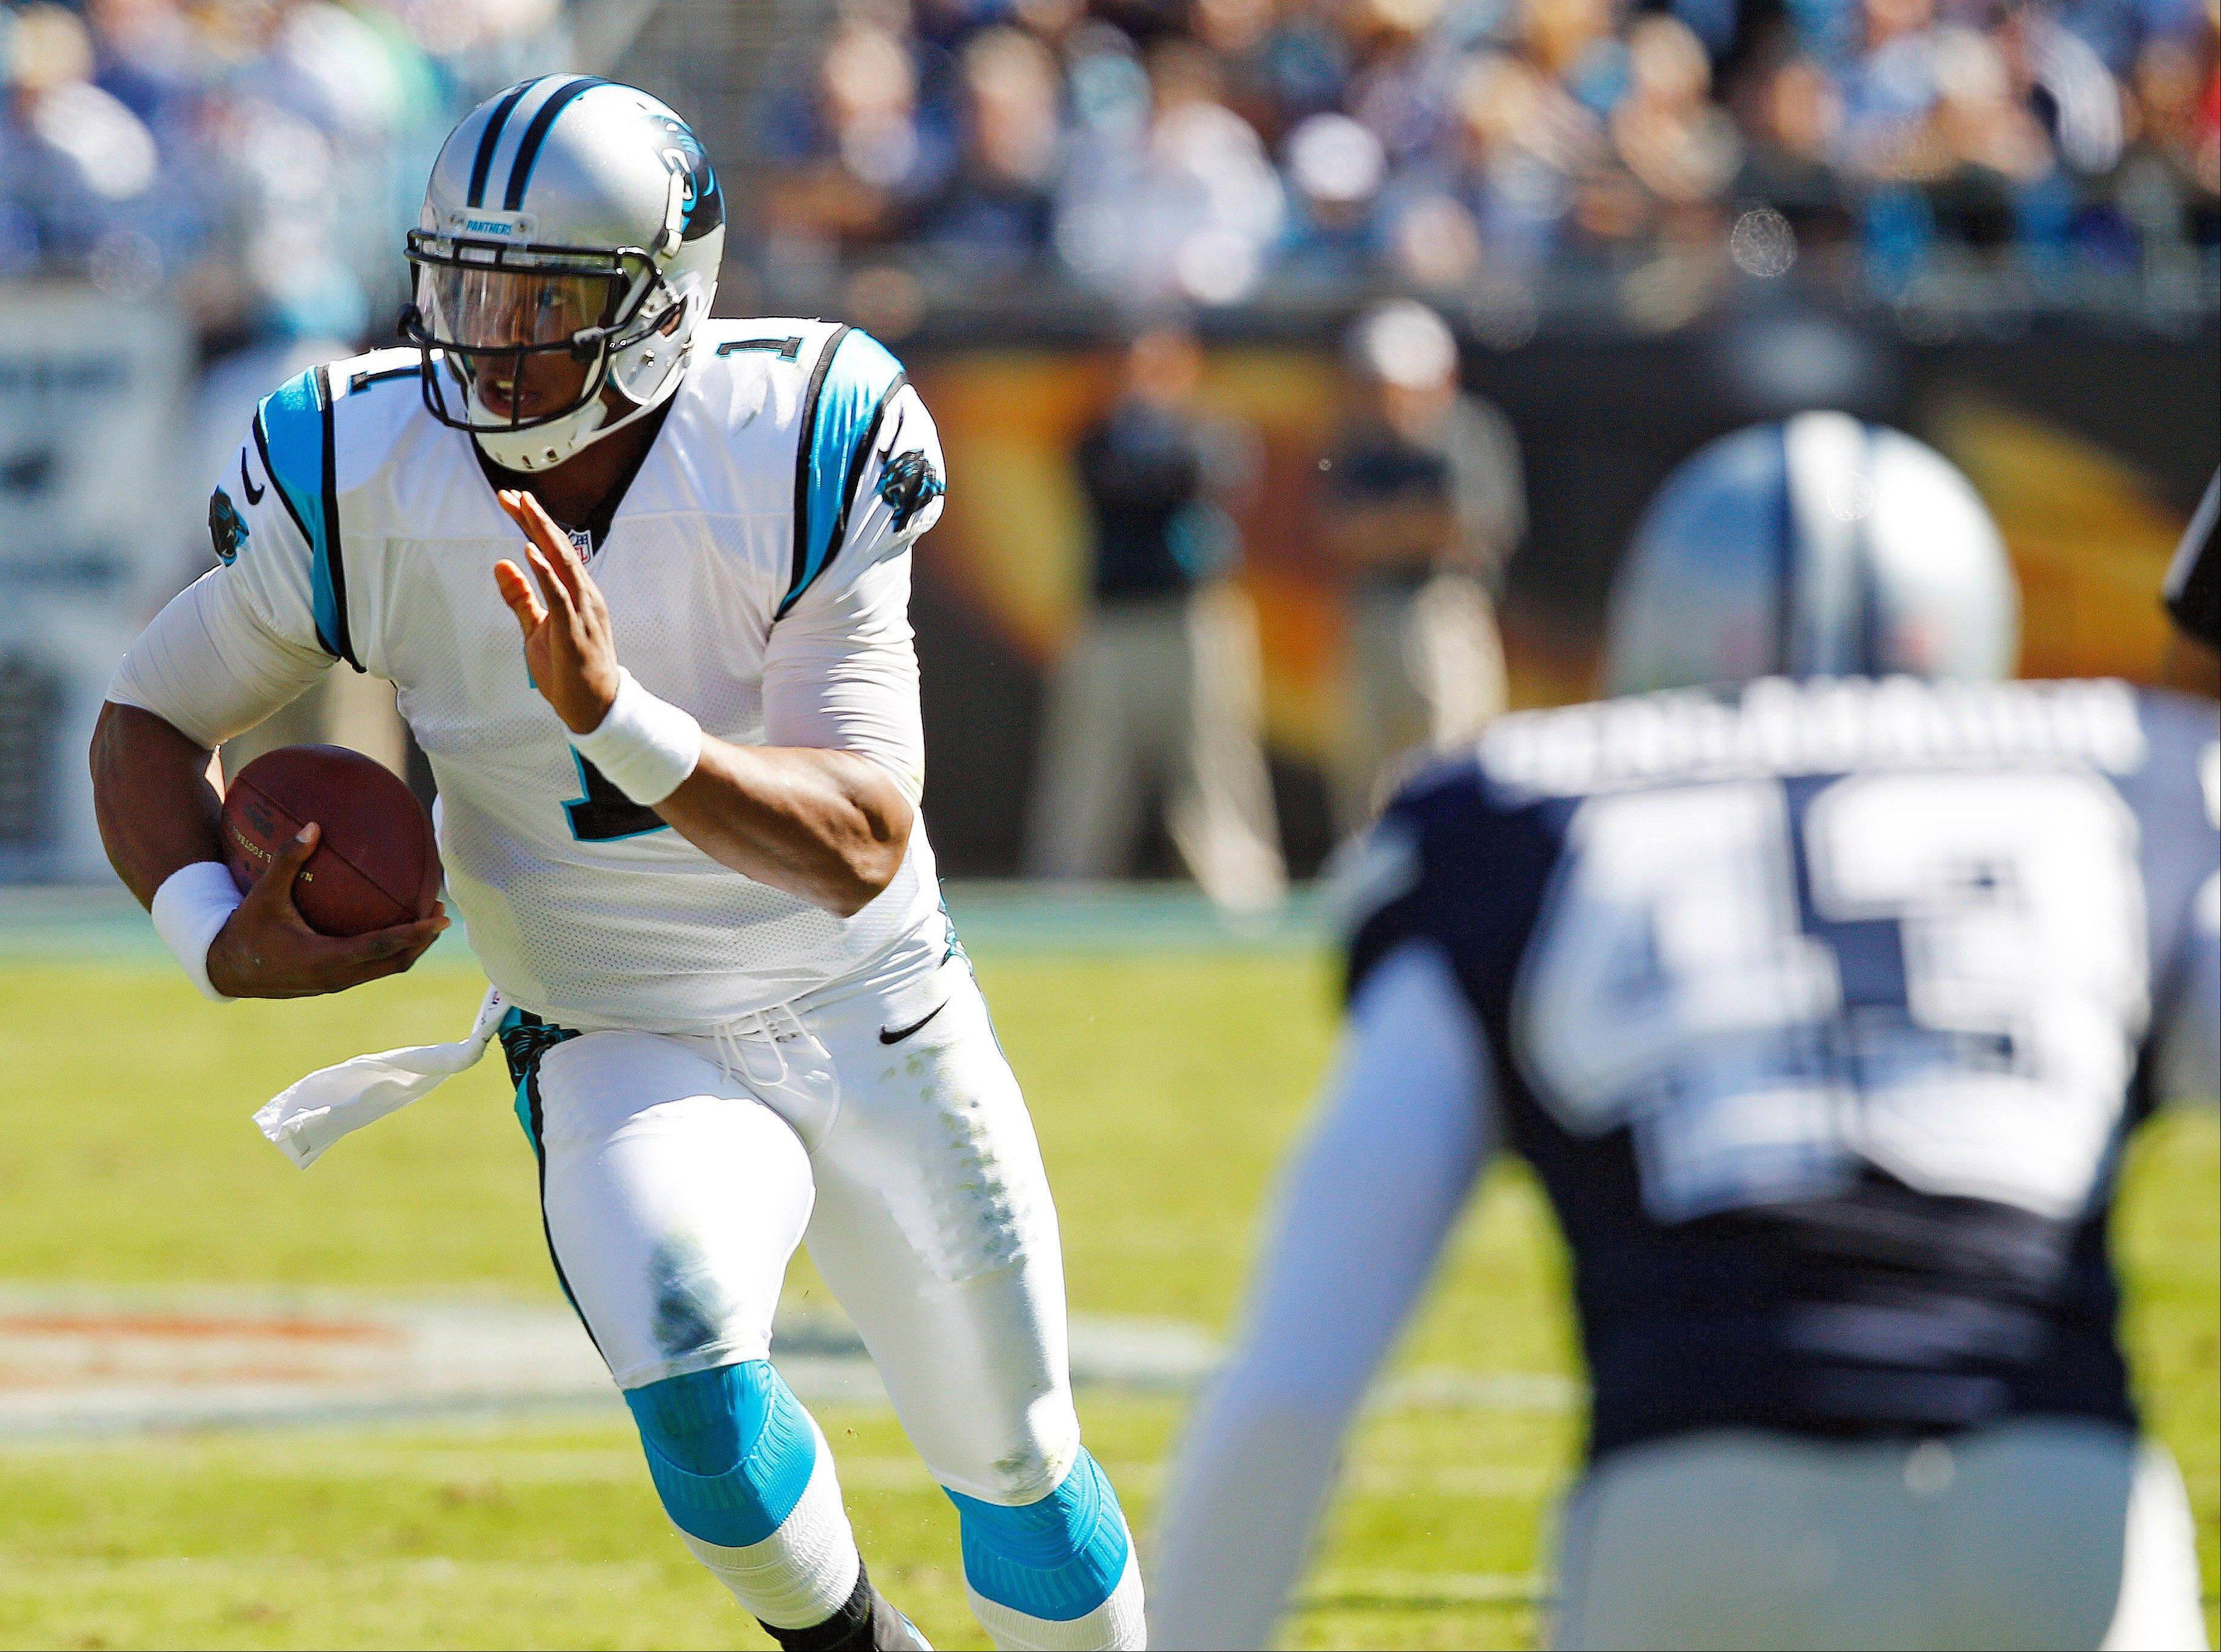 Panthers quarterback Cam Newton completed 27 passes for 374 yards and also ran for 2 touchdowns last season in a loss to the Bears at Soldier Field.